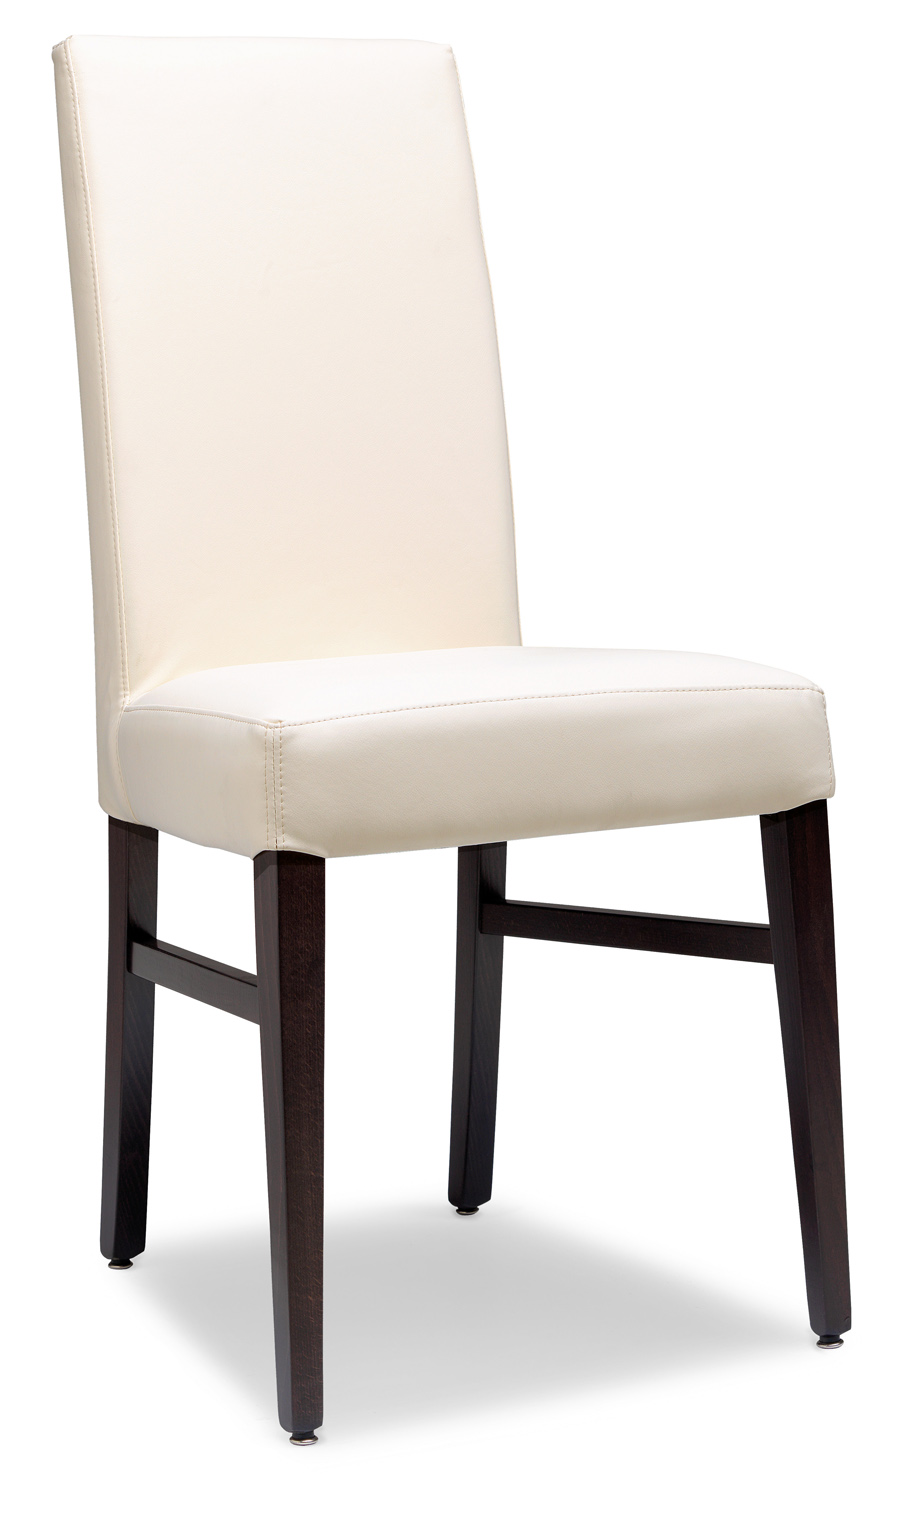 Restaurant furniture supply hotel wholesale furniture for Wholesale furniture